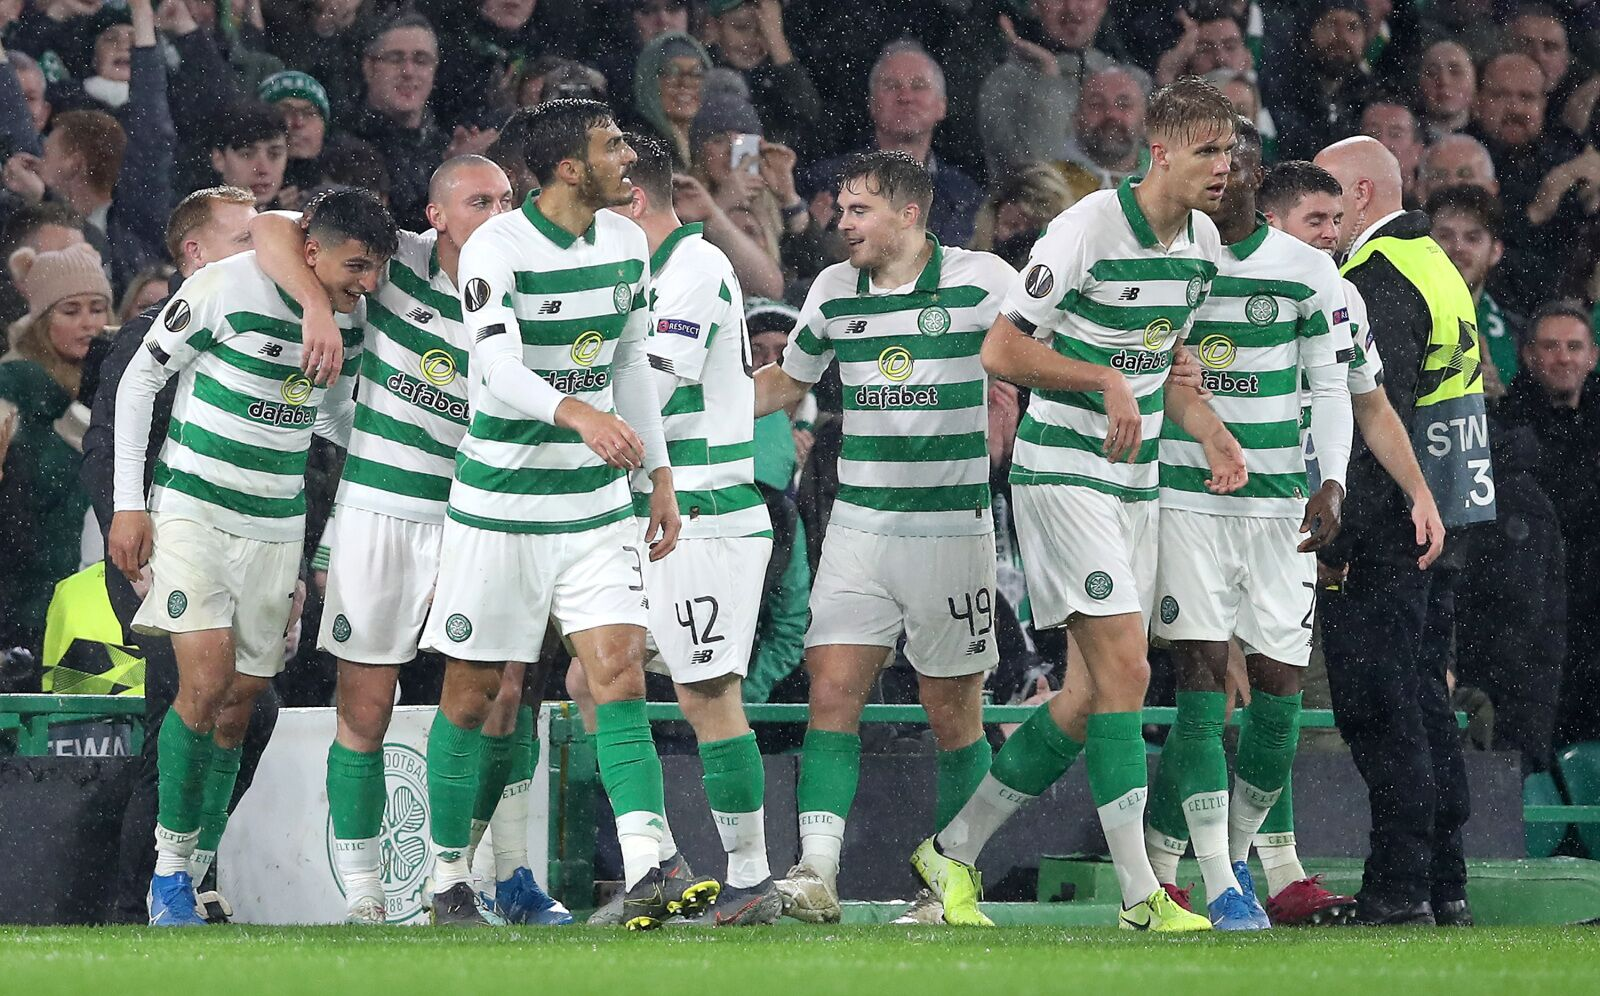 3 Celtic FC players that need to see some improvement